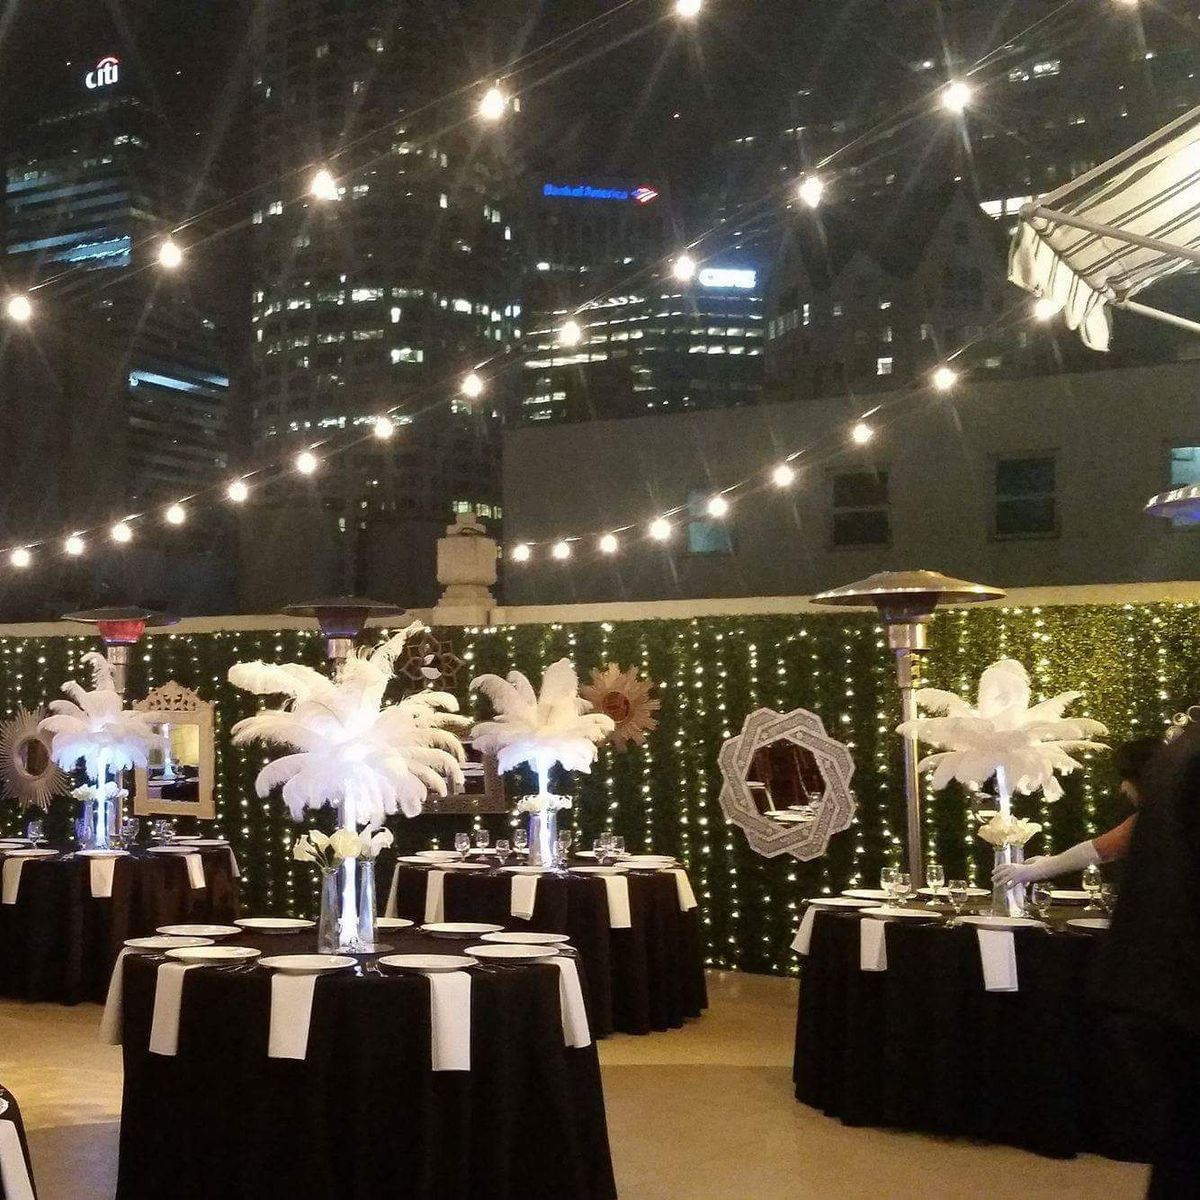 Rent ostrich feather centerpieces wedding amp party centerpiece rentals - Dowler Event Decor Wedding Event Rentals Photobooths California Orange County And Surrounding Areas